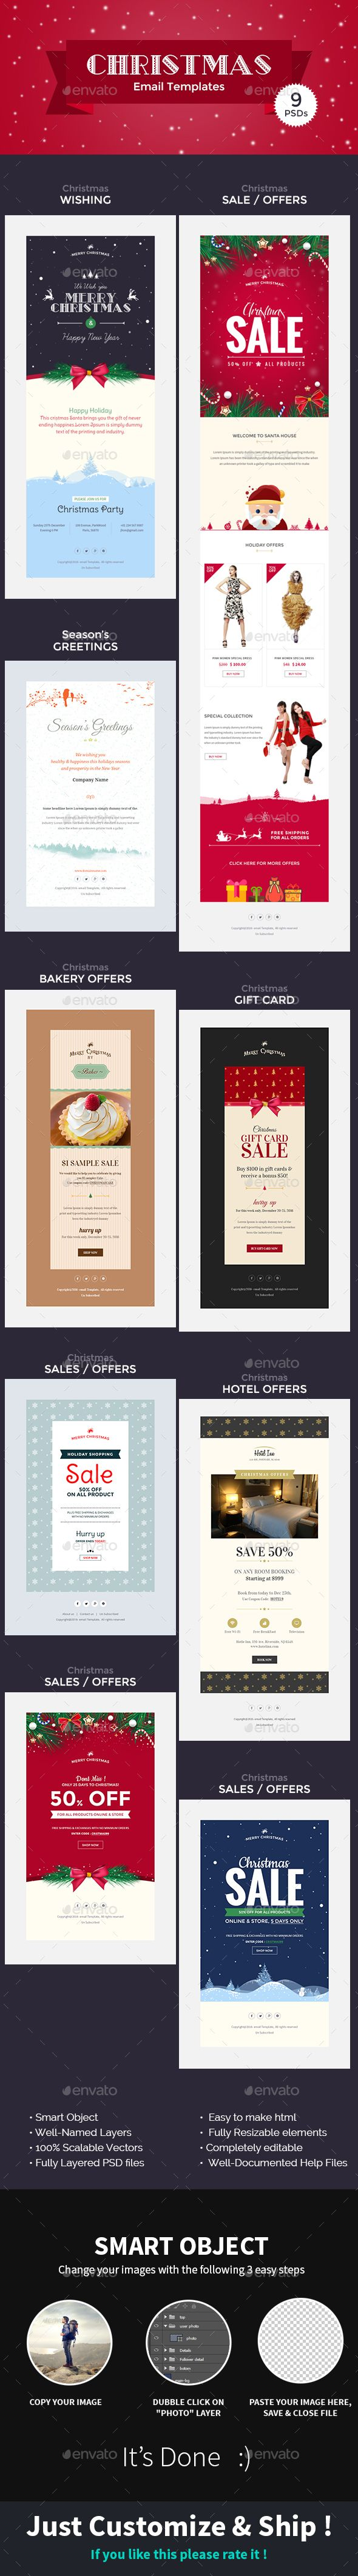 Christmas - Offers/Greetings Email Template PSD